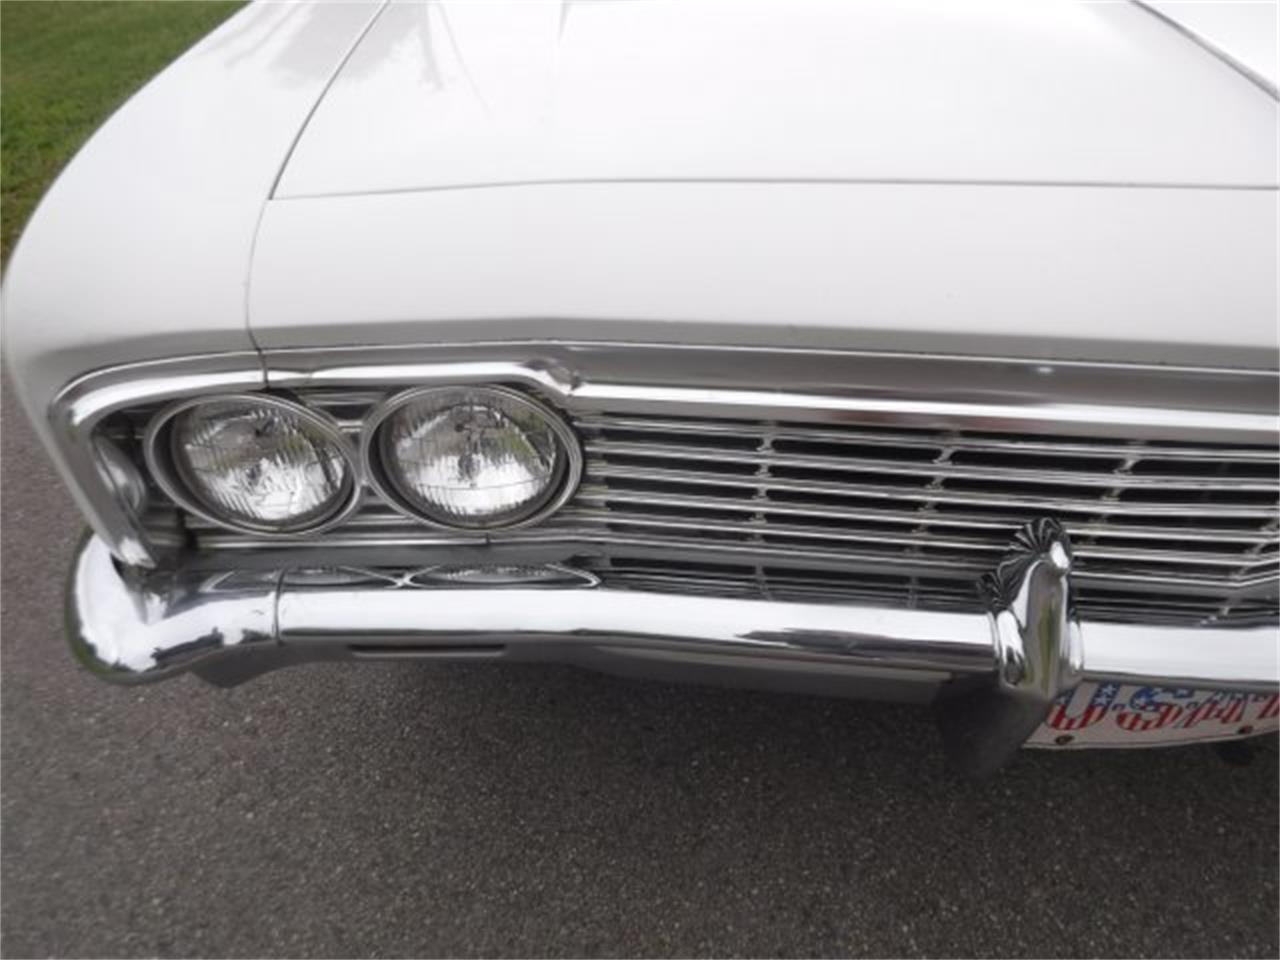 1966 Chevrolet Impala SS (CC-1243107) for sale in Milford, Ohio